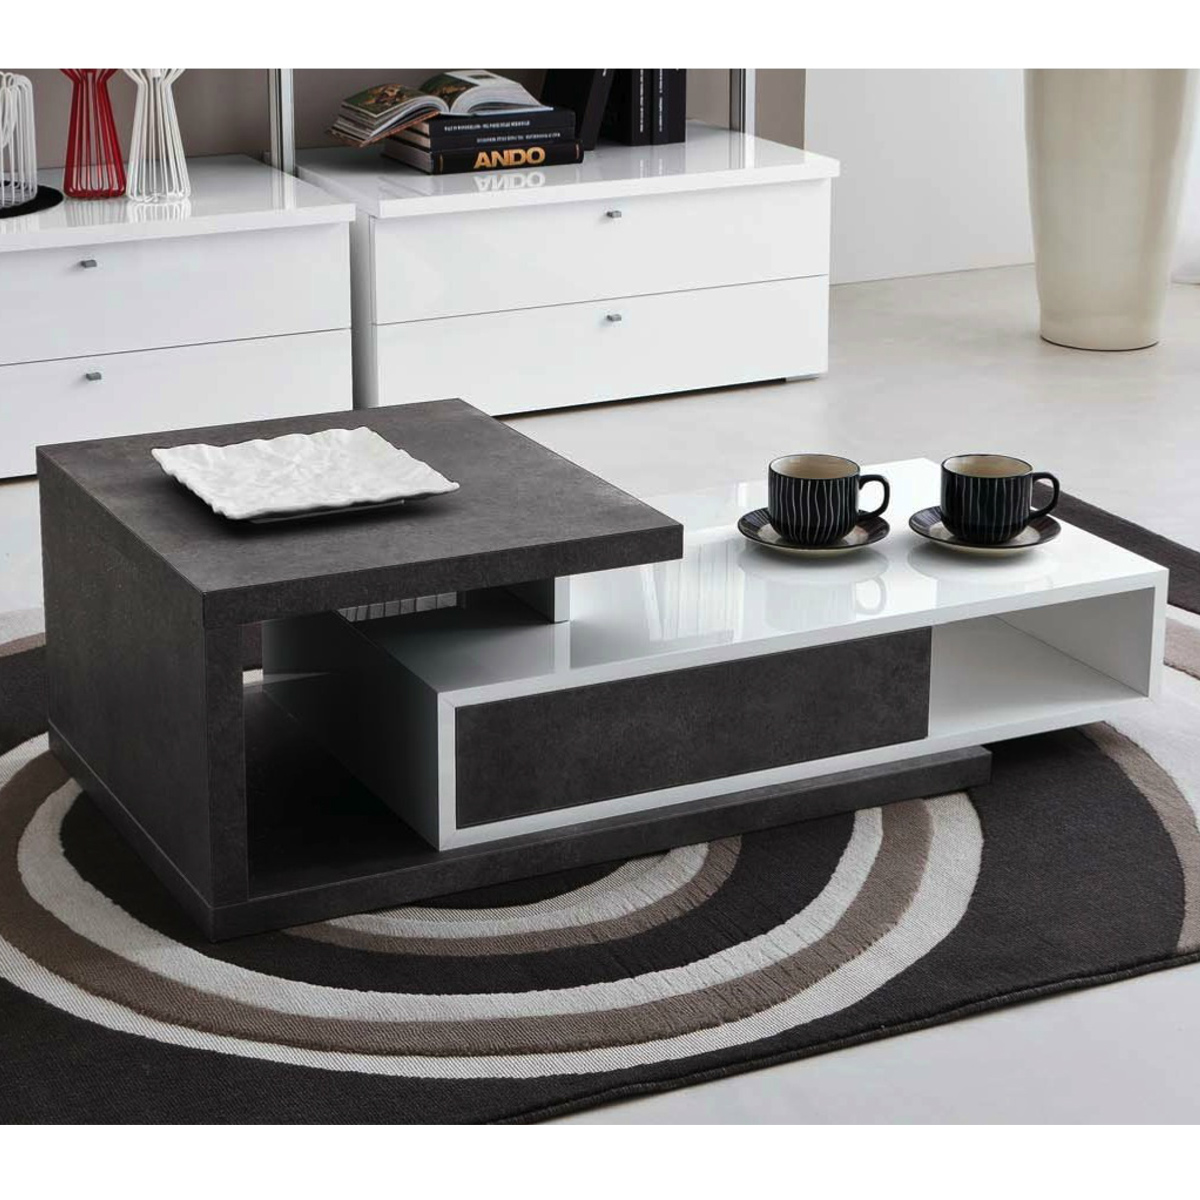 table basse petit salon free table basse pour petit salon accueil console miroir meuble dentre. Black Bedroom Furniture Sets. Home Design Ideas